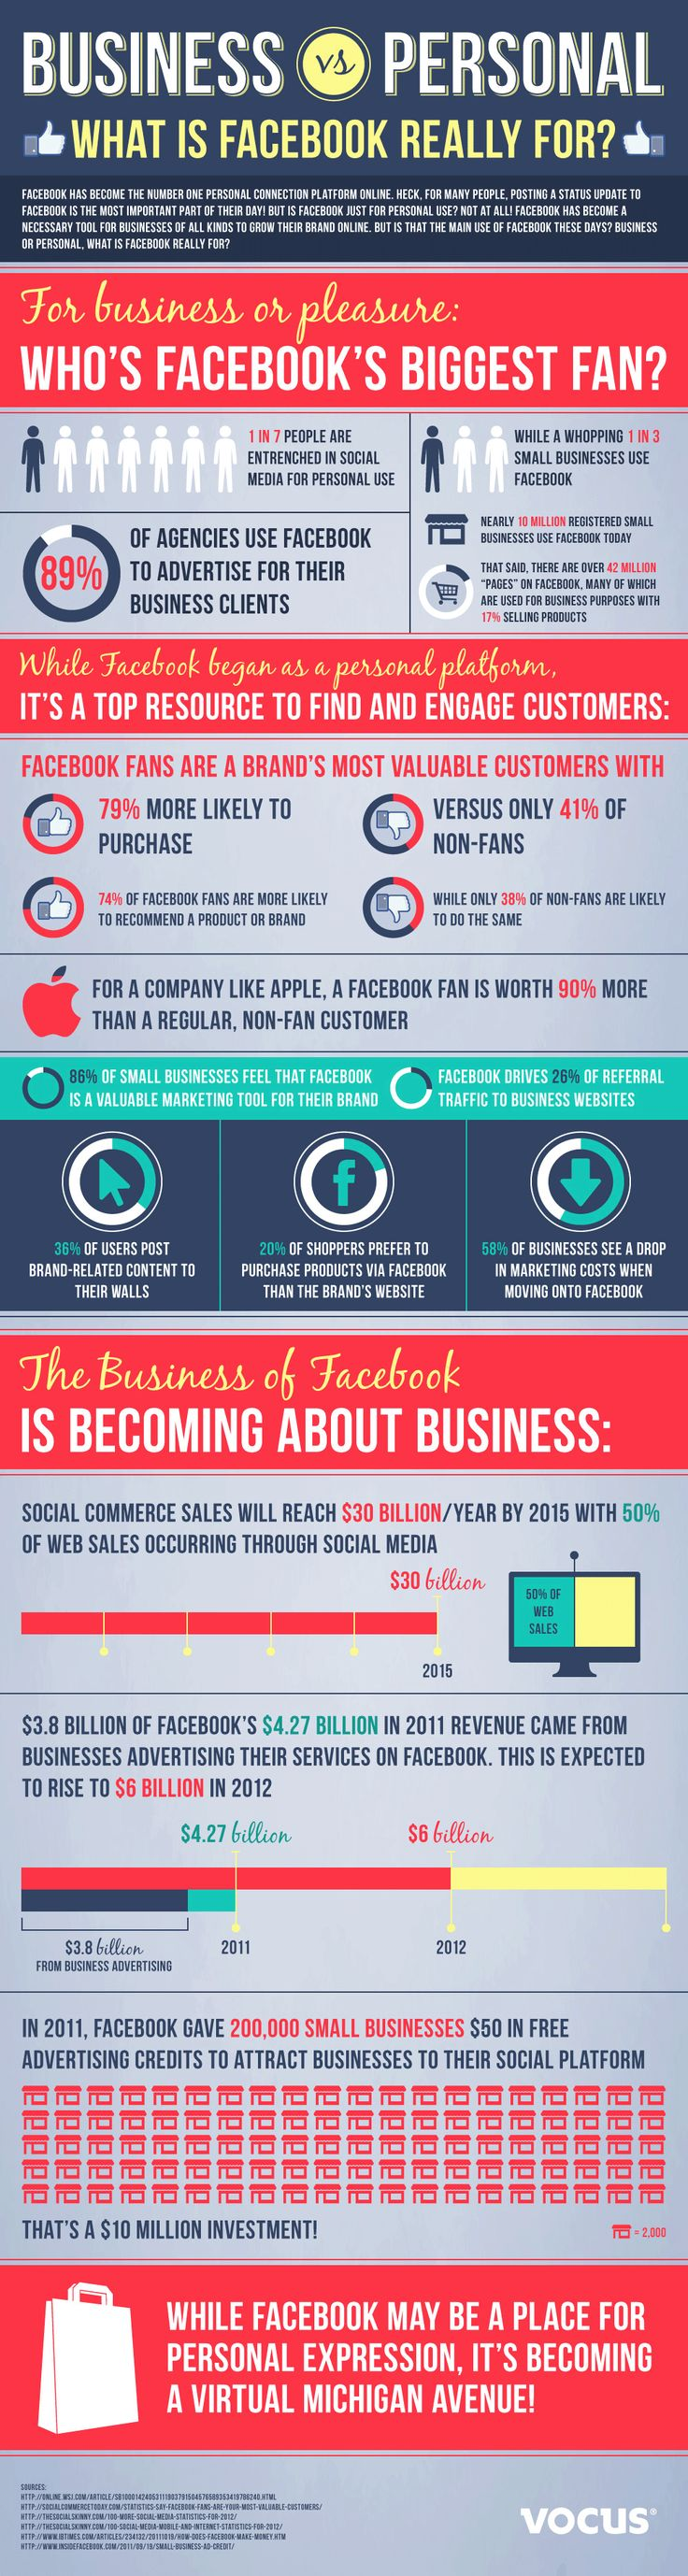 167 best Business Infographics images on Pinterest | Business ...